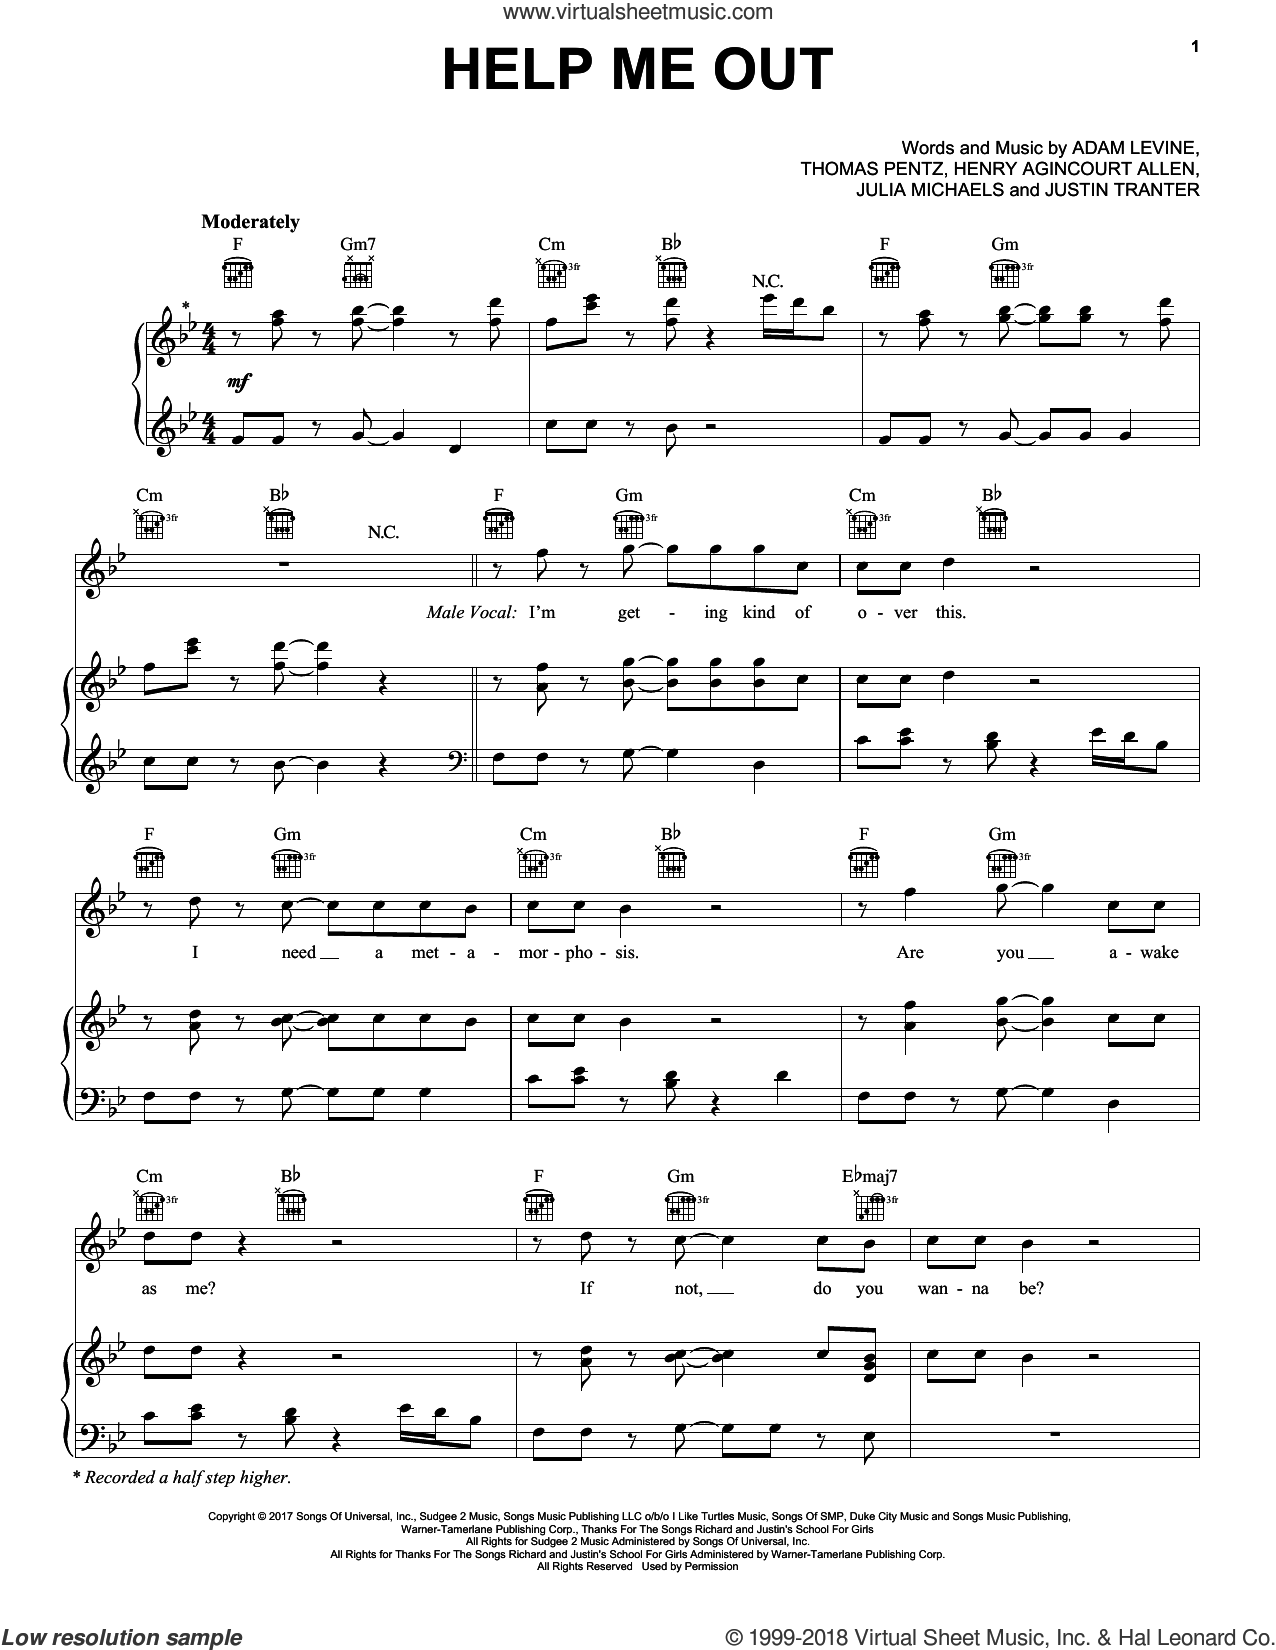 Help Me Out sheet music for voice, piano or guitar by Maroon 5 with Julia Michaels, Adam Levine, Diplo, Henry Agincourt, Julia Michaels, Justin Tranter, King Henry and Thomas Wesley, intermediate skill level